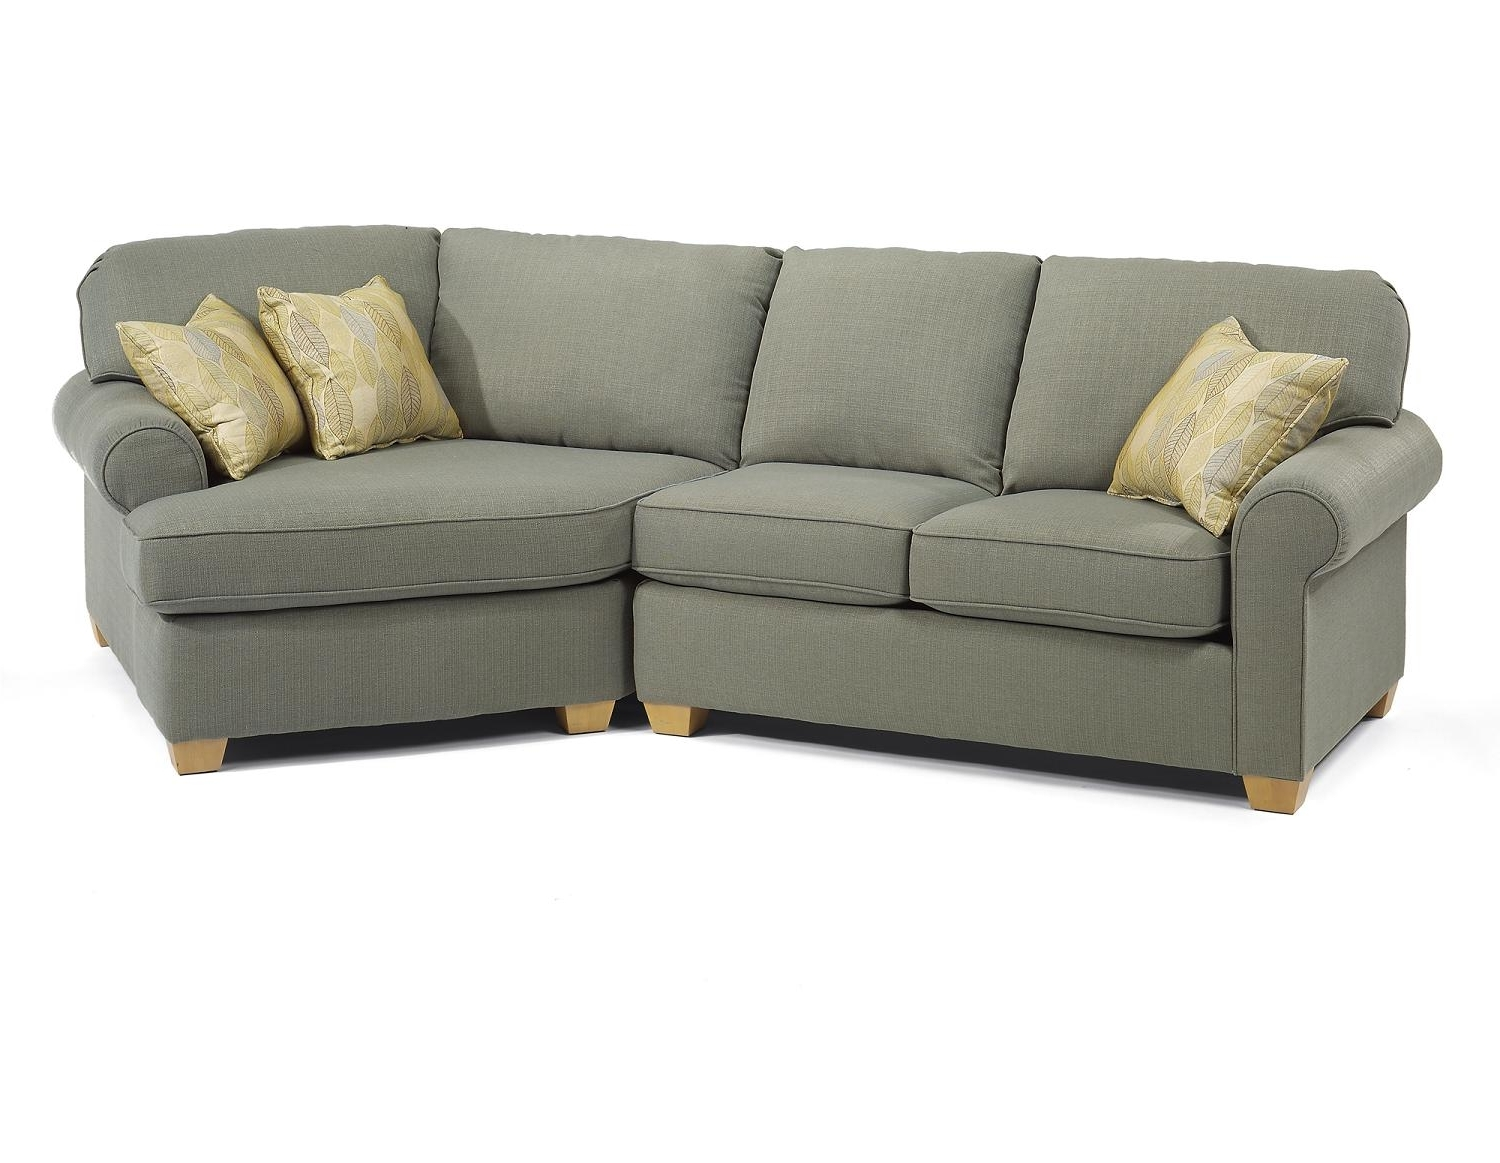 Stylish Small Sectional Sofa With Chaise — Fabrizio Design Regarding Trendy Small Sectional Sofas (View 12 of 15)